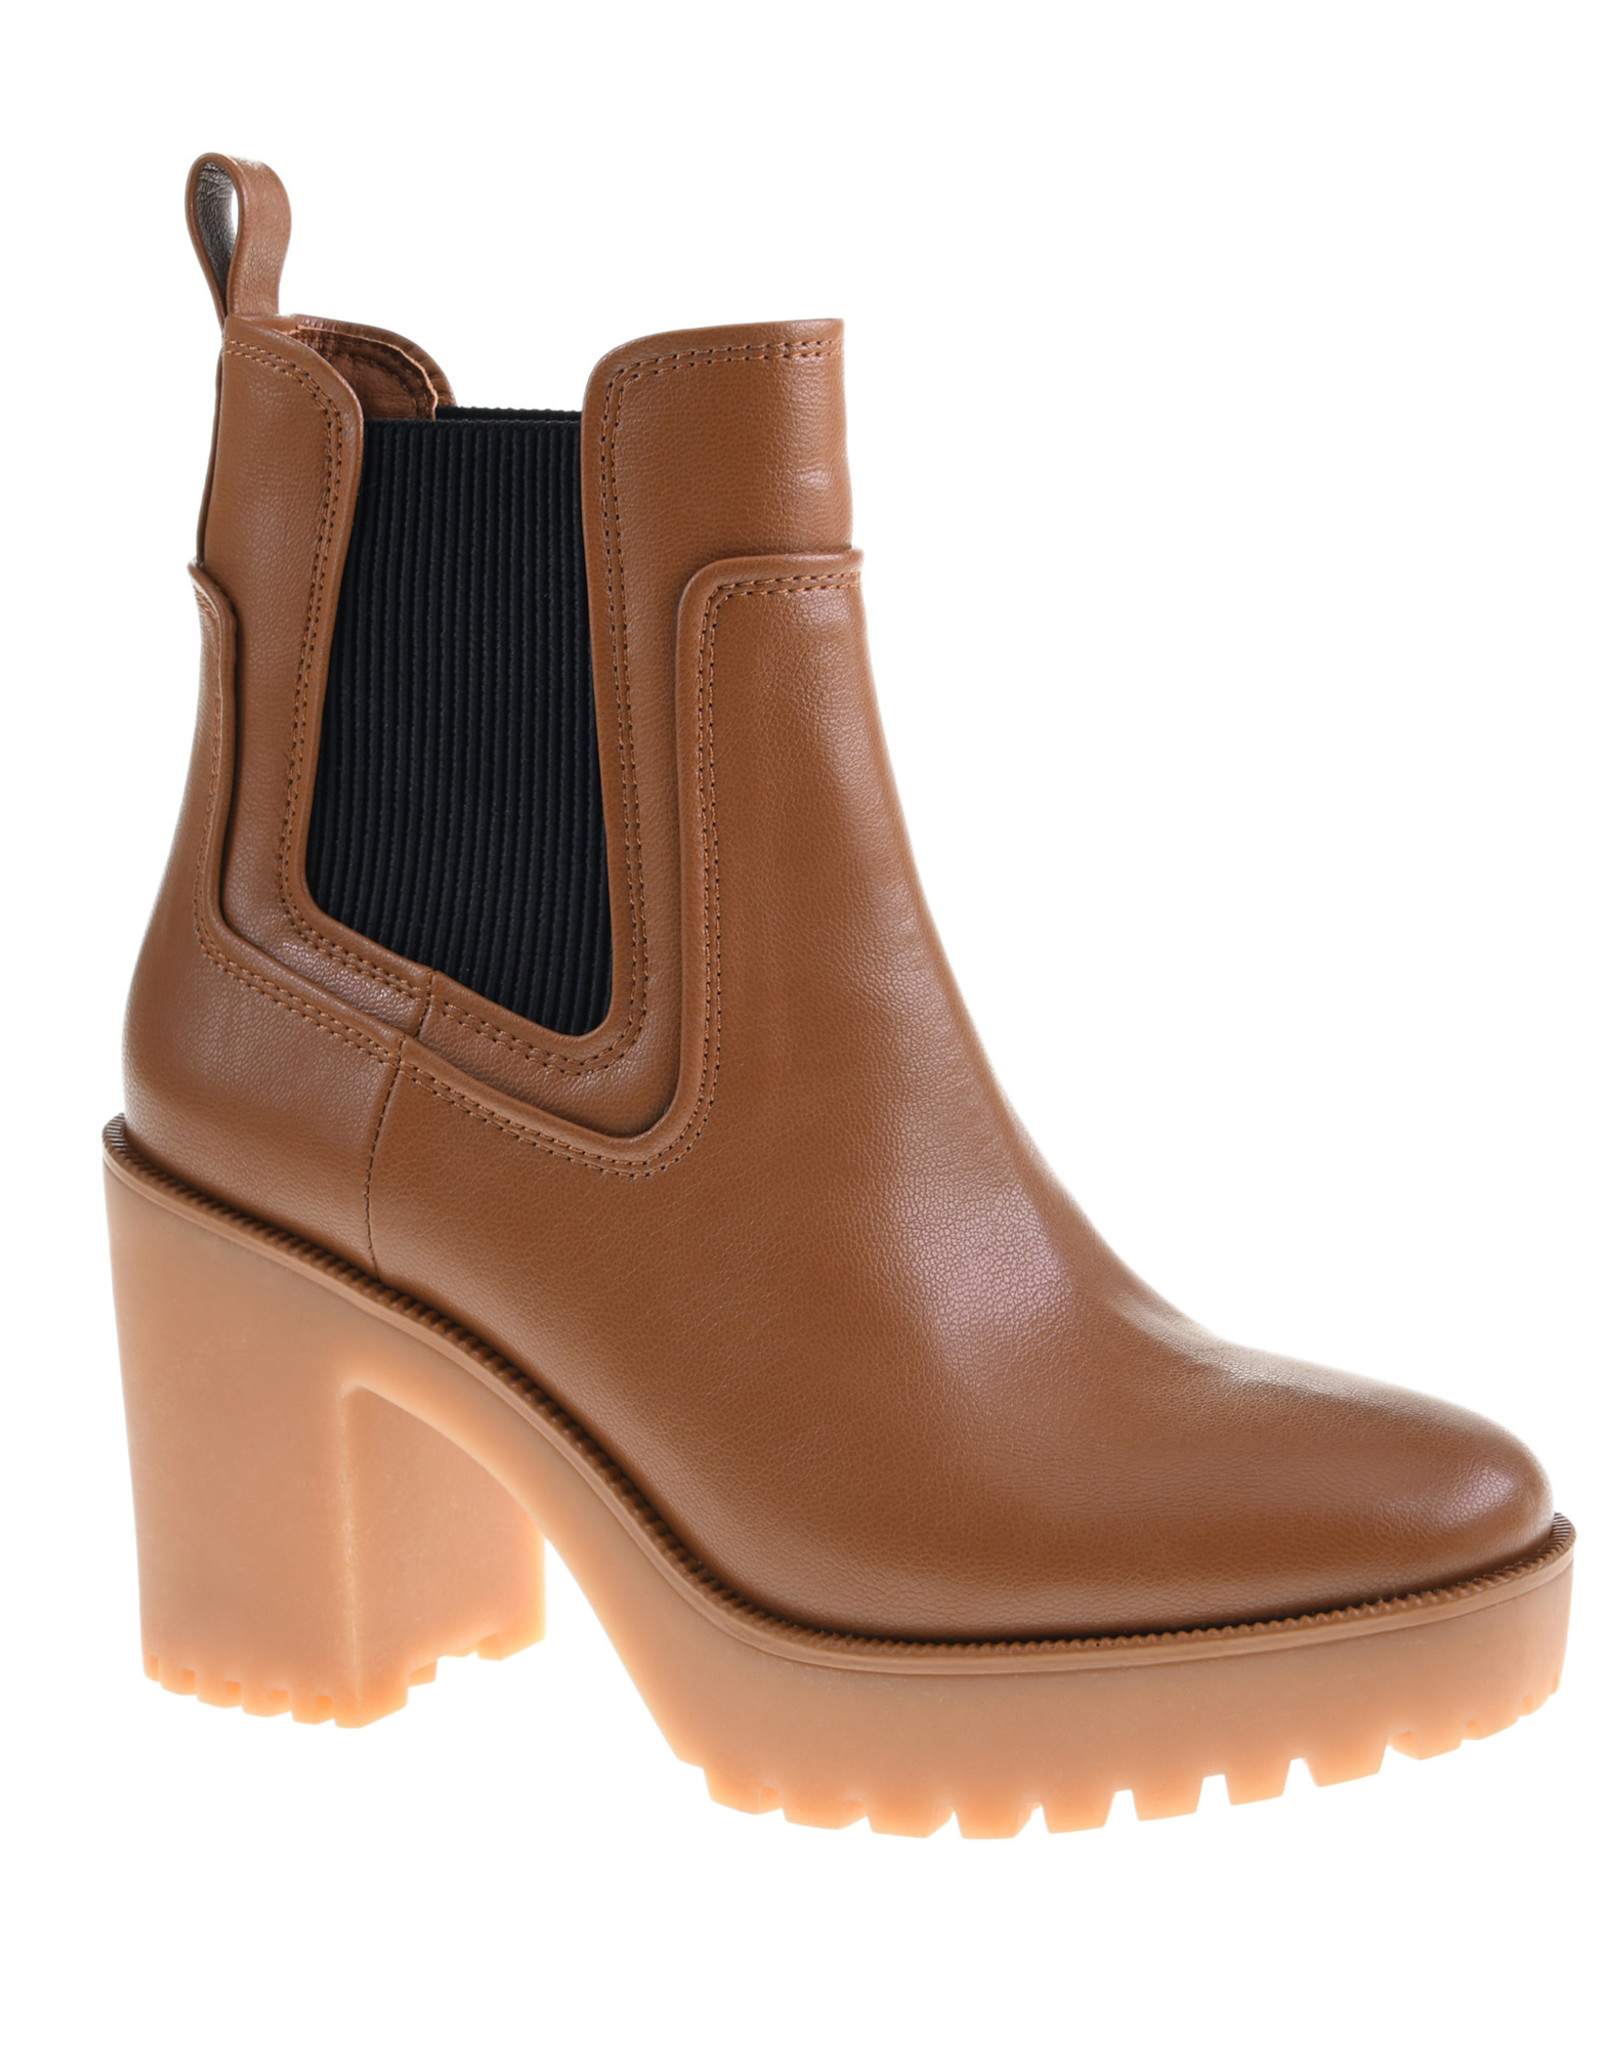 Miss Bliss Good Day Boot- Camel